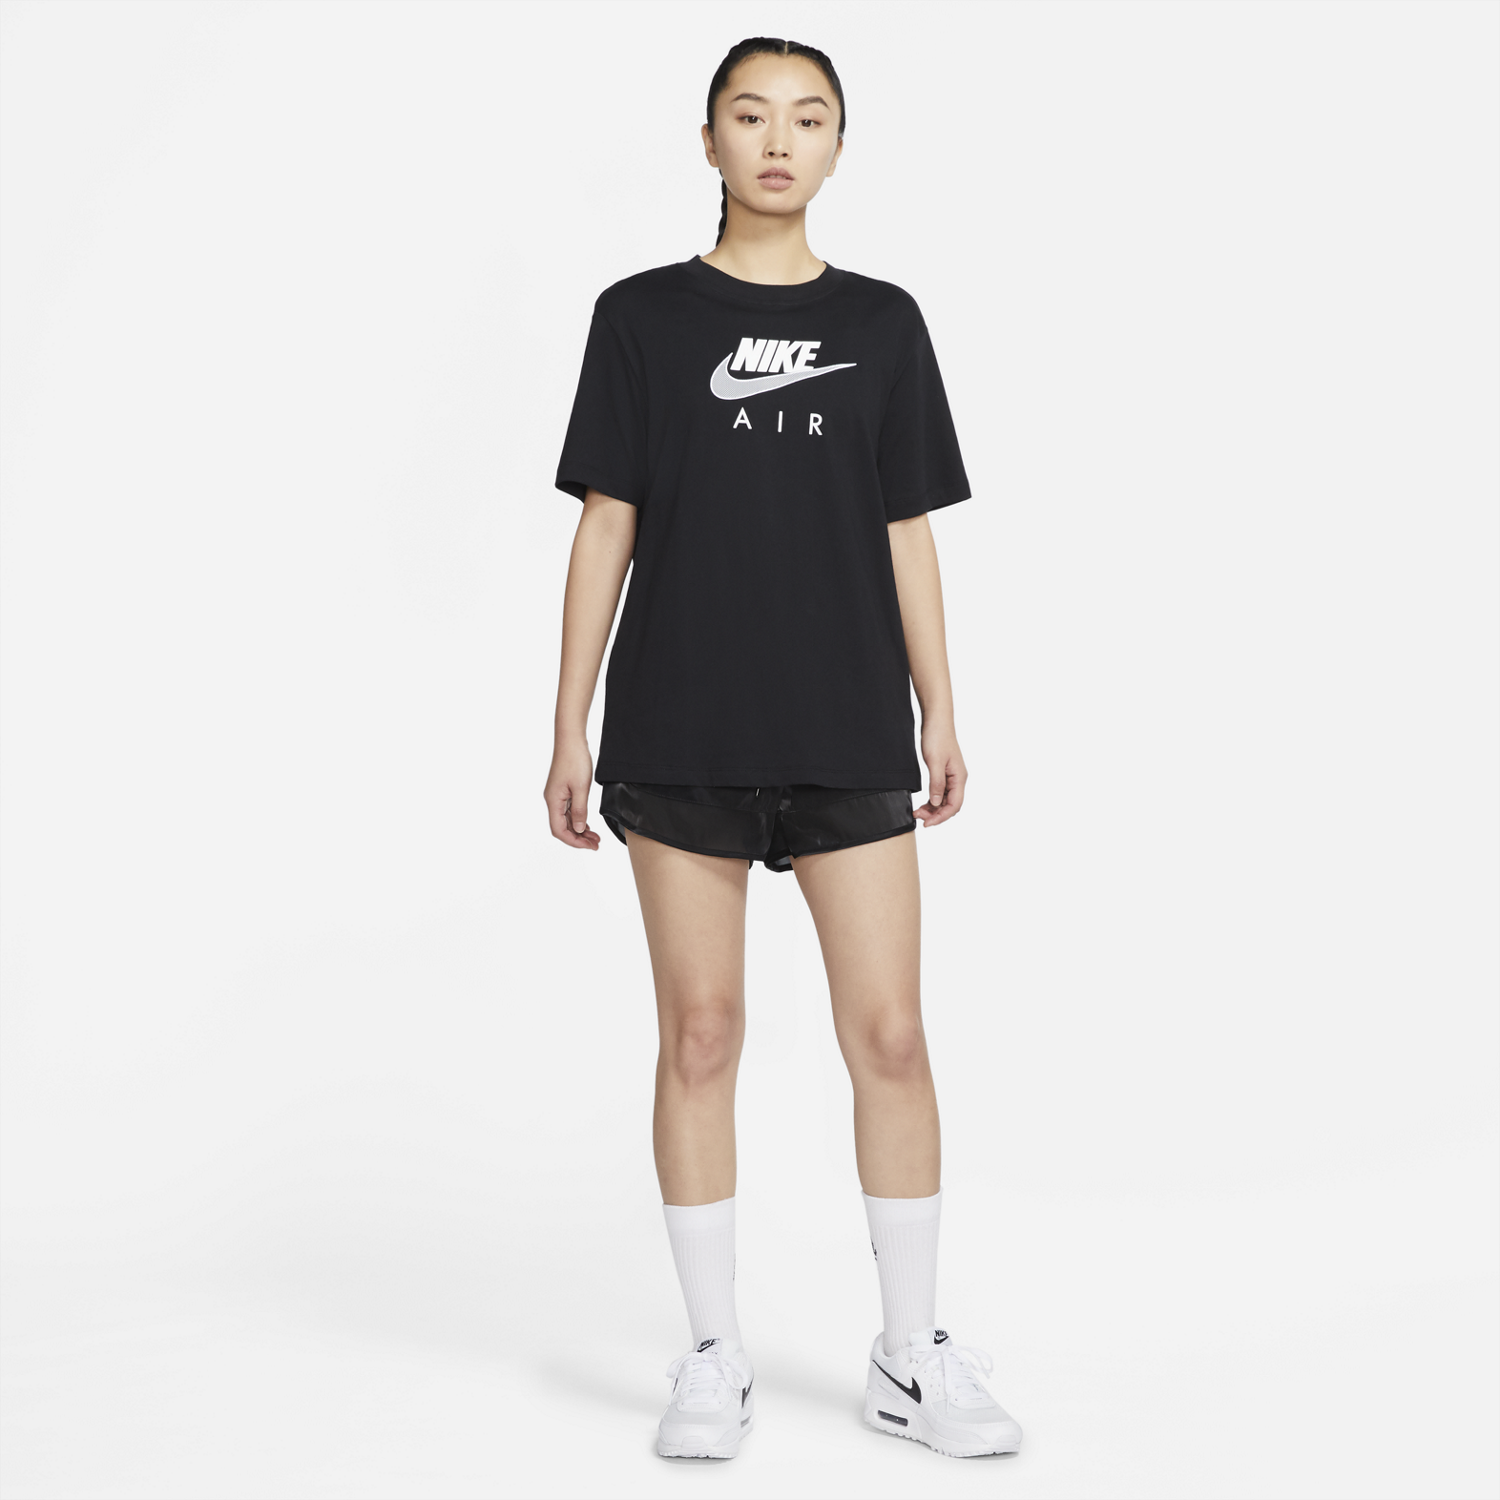 NIKE W'S T-SHIRTS W AIR BOYFRIEND TOP